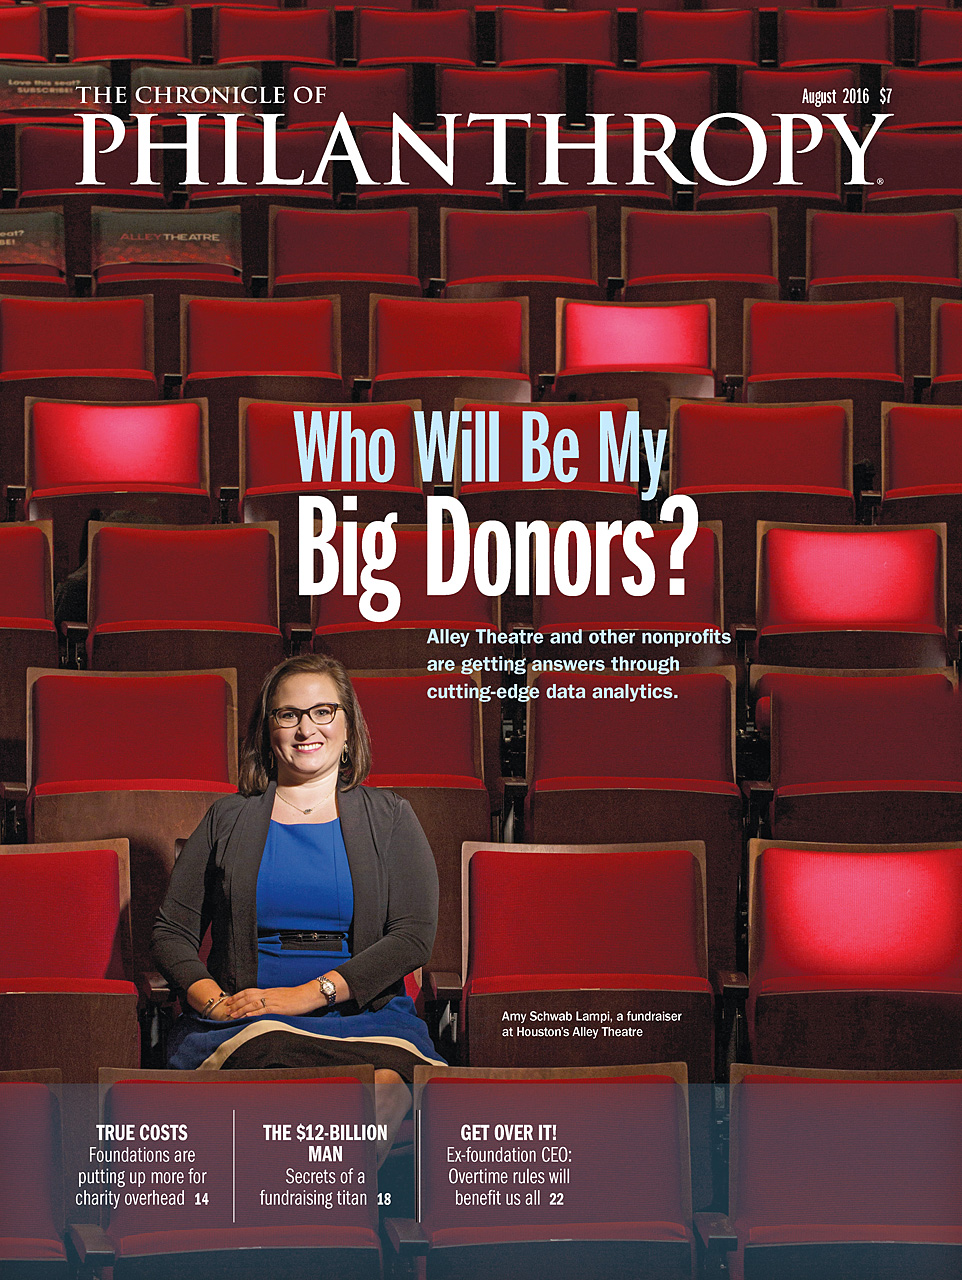 August 2016 cover of The Chronicle of Philanthropy